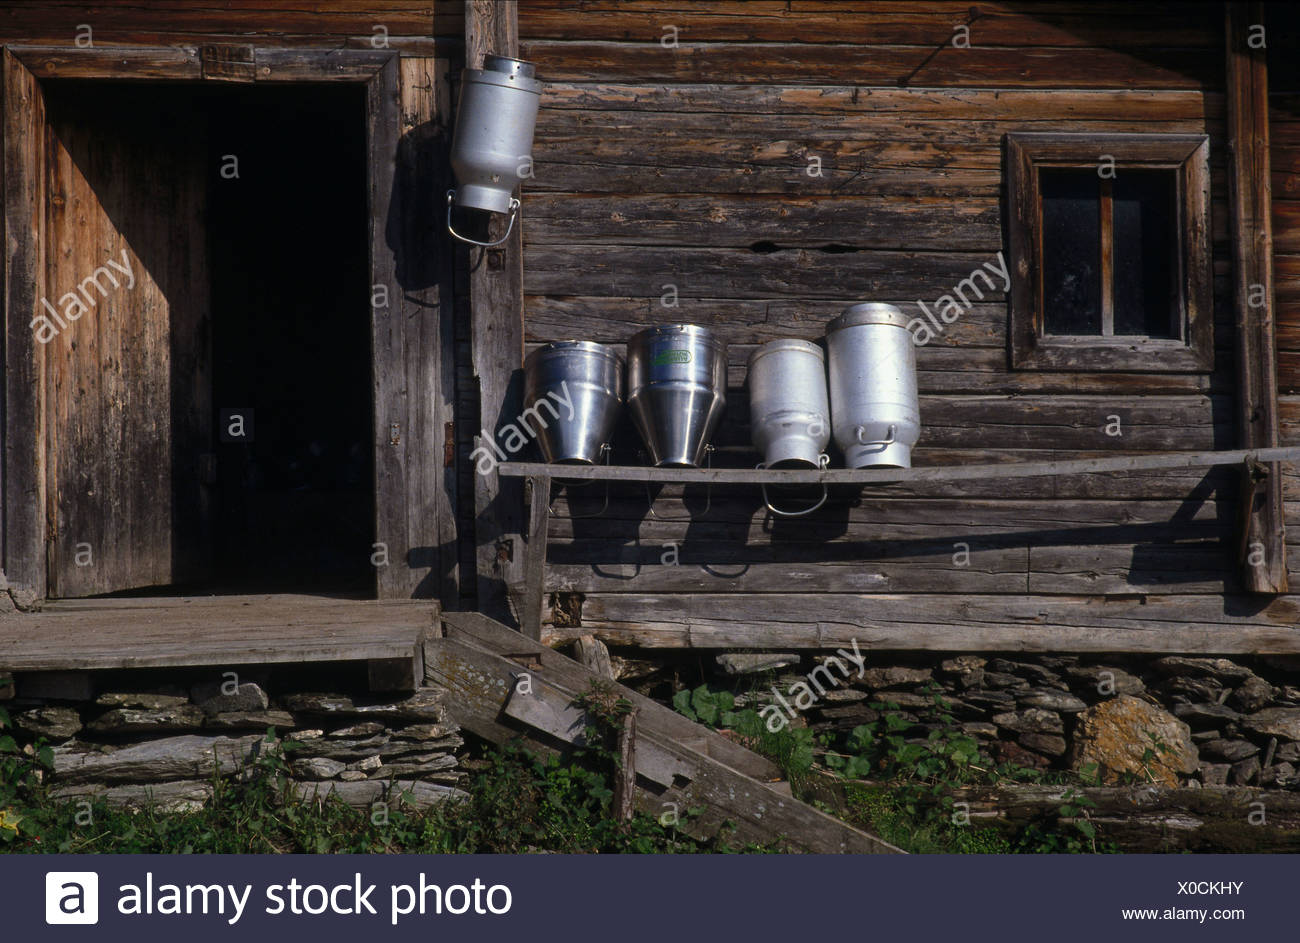 Milk cans in wooden house, Bichlalm, Tux Valley, Tyrol, Austria - Stock Image